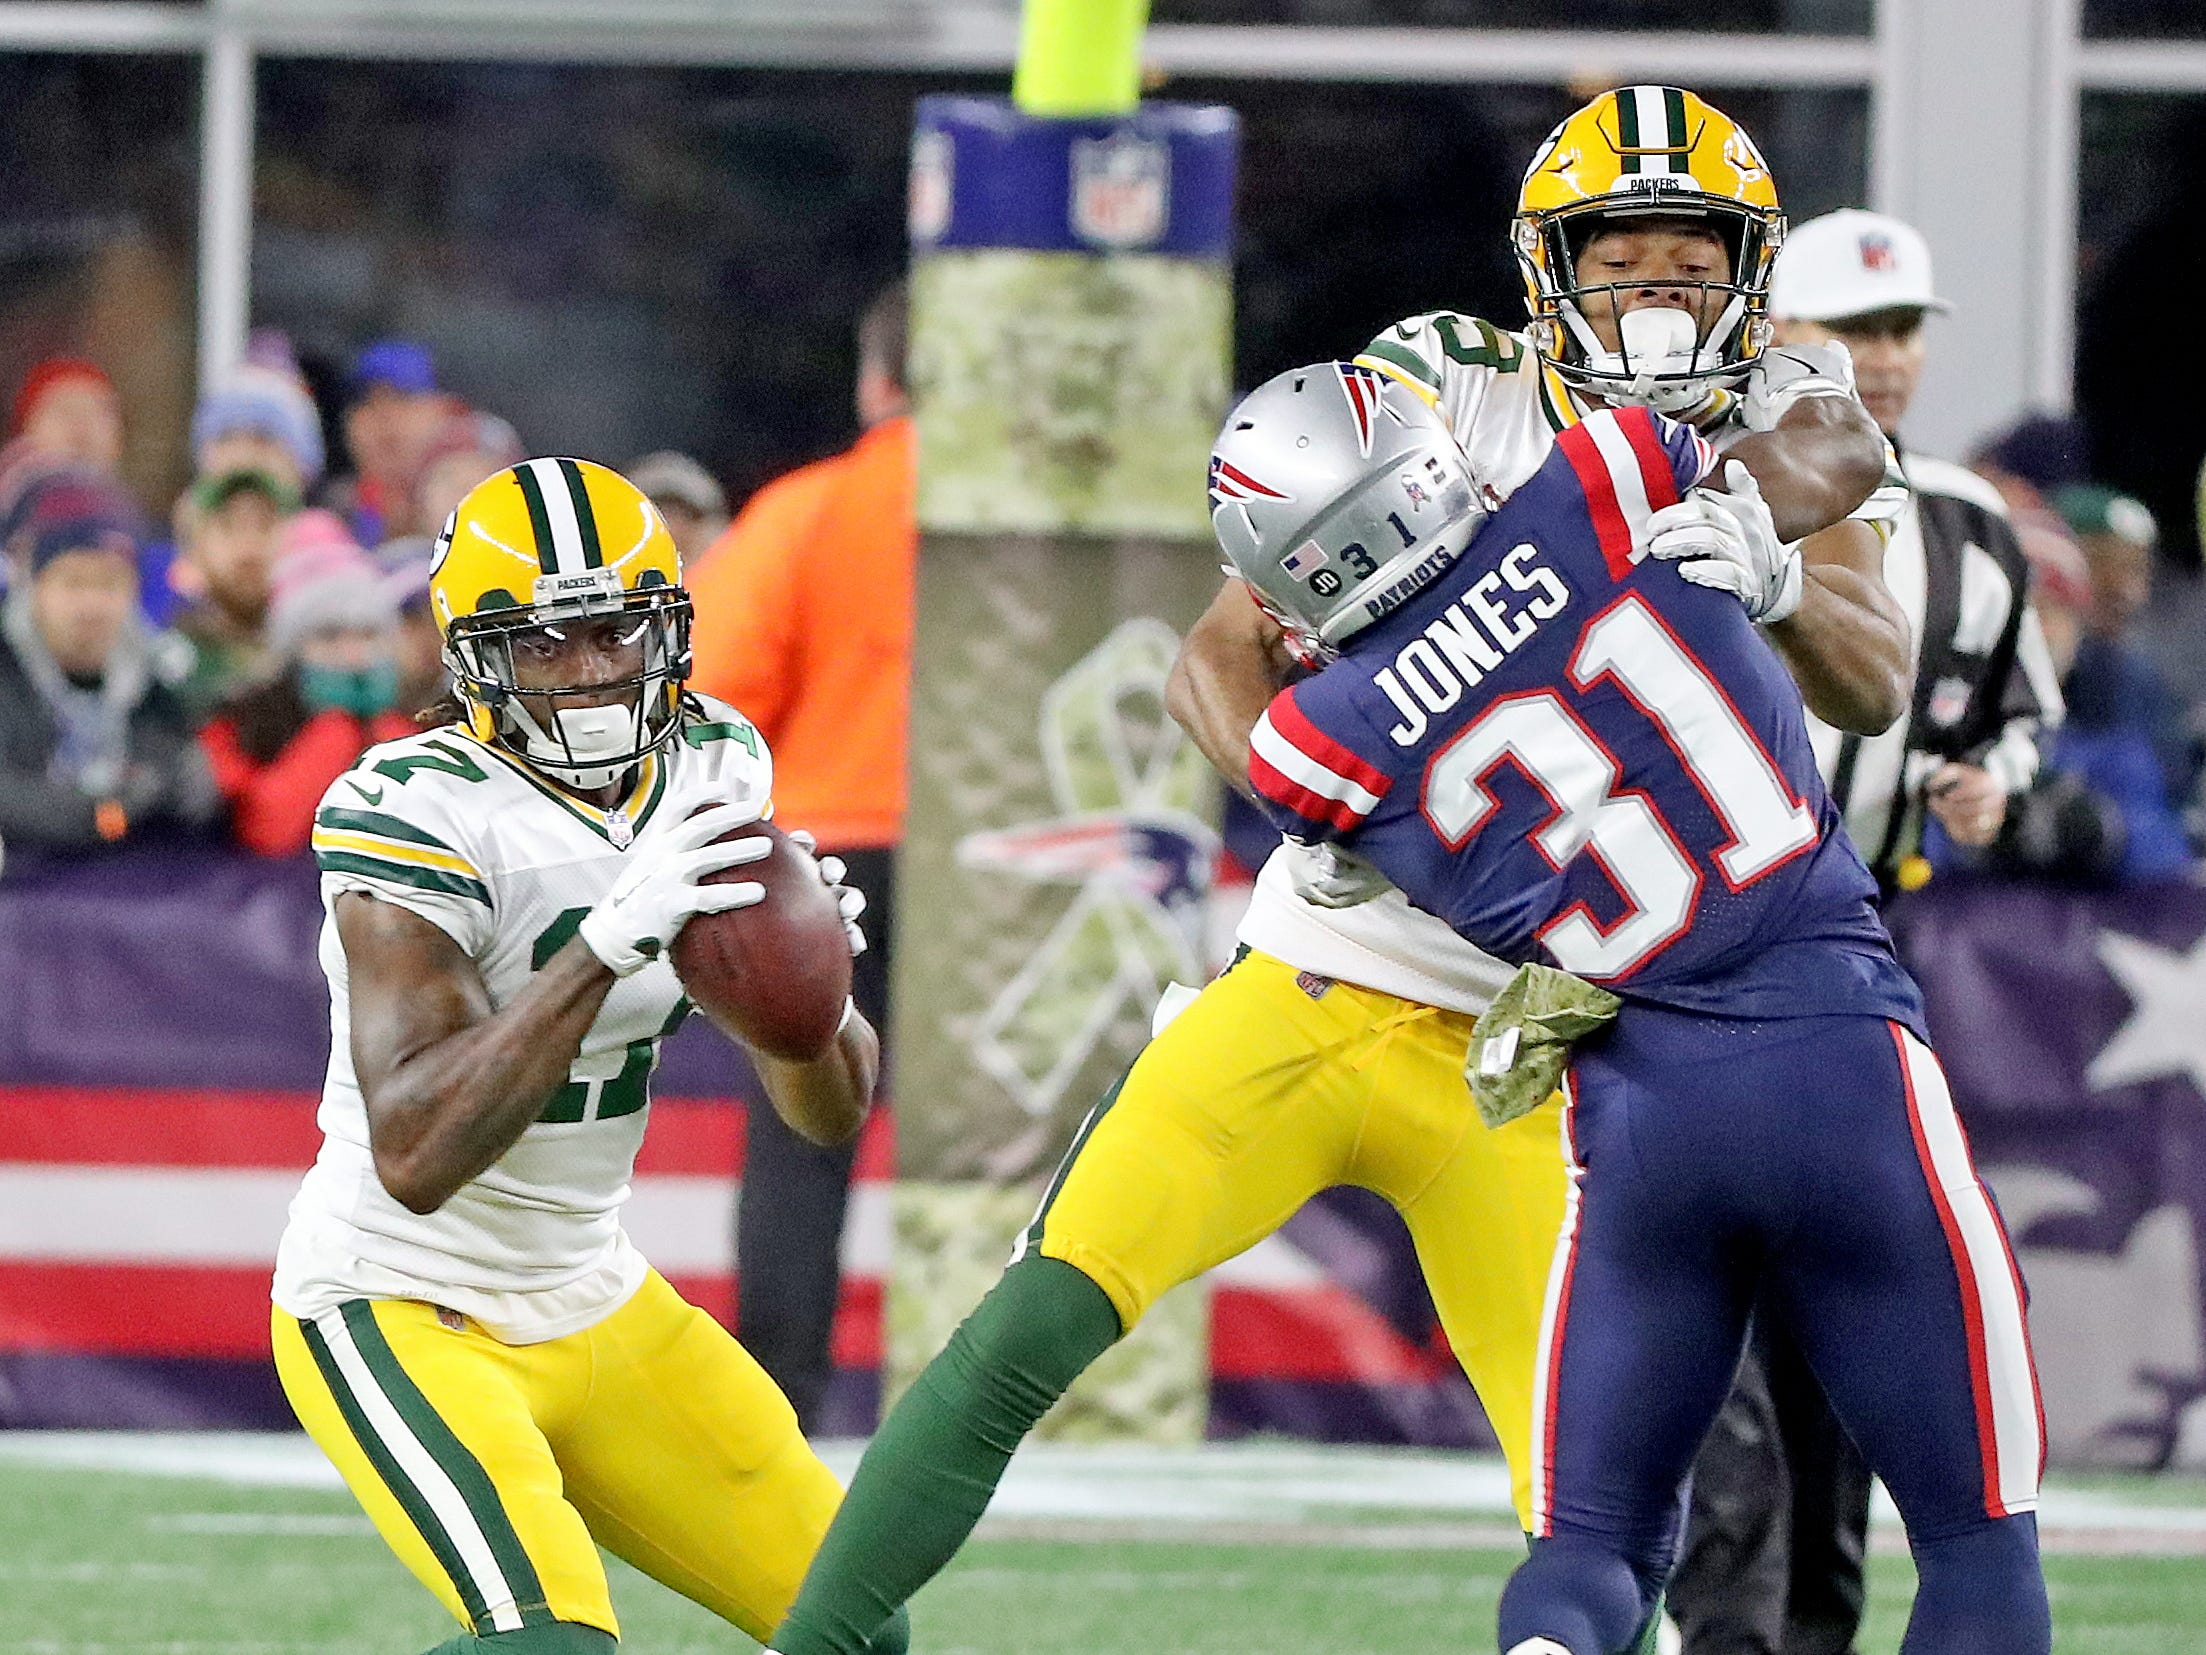 Green Bay Packers wide receiver Davante Adams (17) makes a catch as wide receiver Equanimeous St. Brown (19) blocks against the New England Patriots Sunday, November 4, 2018 at Gillette Stadium in Foxborough, Mass.